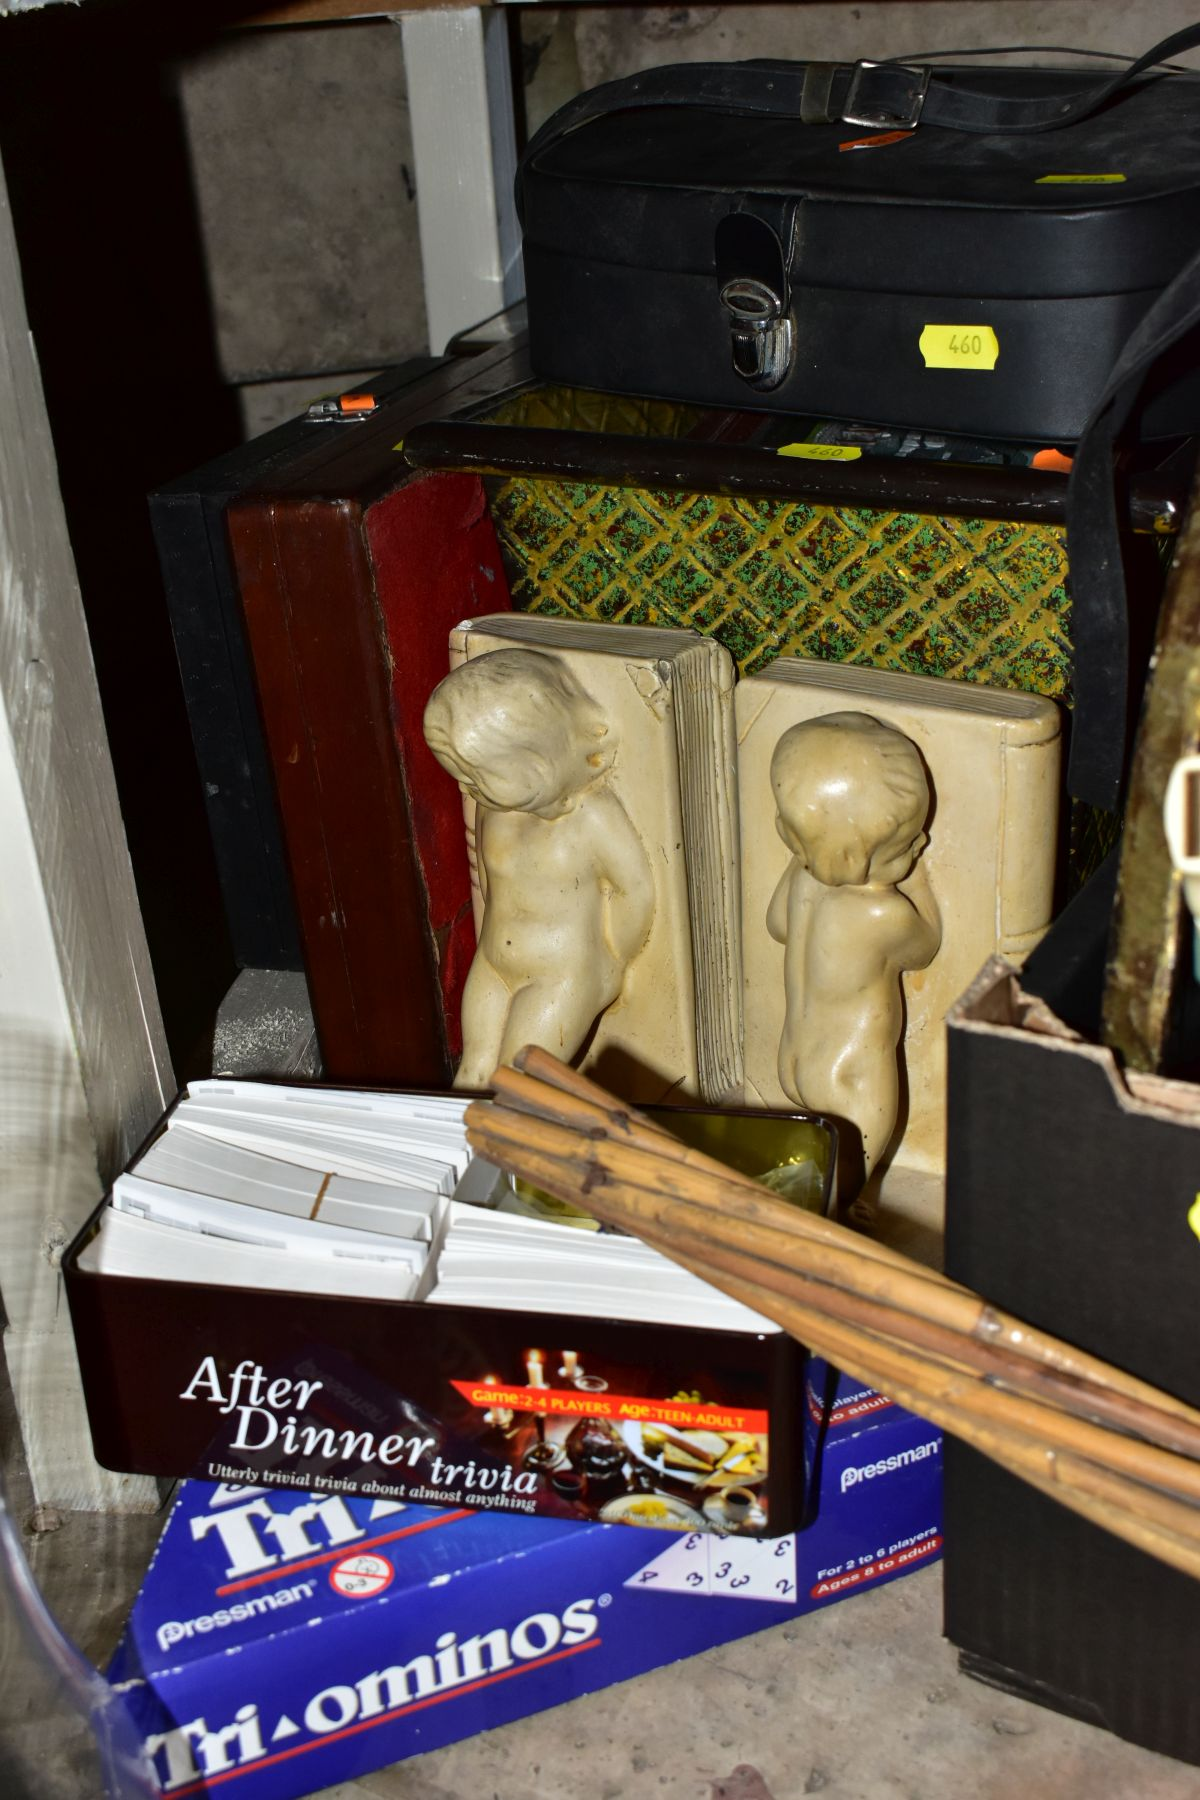 FOUR BOXES AND LOOSE METALWARE, HOUSEHOLD SUNDRIES, OIL LAMP, etc, to include board games, book - Image 7 of 16